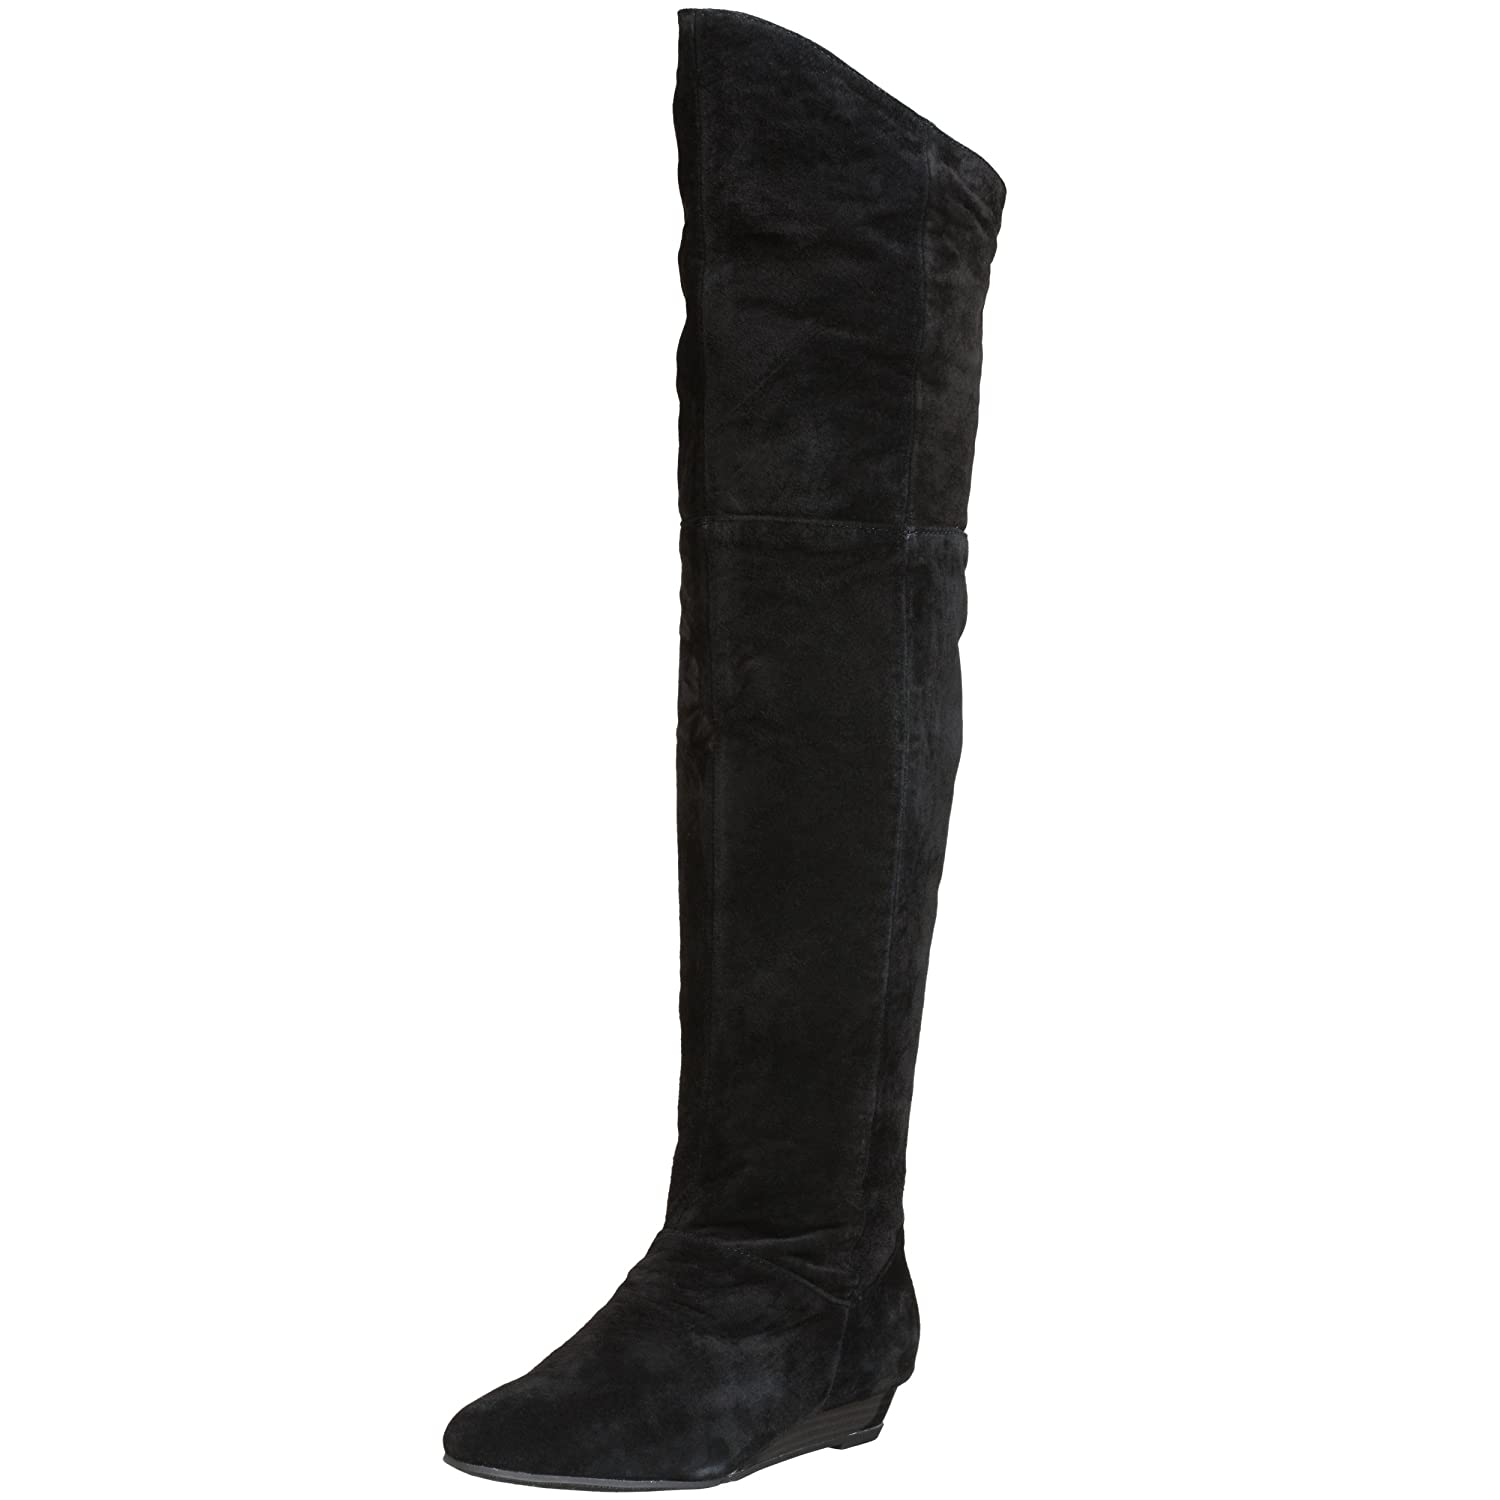 Chinese Laundry Women's Turbo Suede Wedge Boot - Free Overnight Shipping & Return Shipping: Endless.com from endless.com